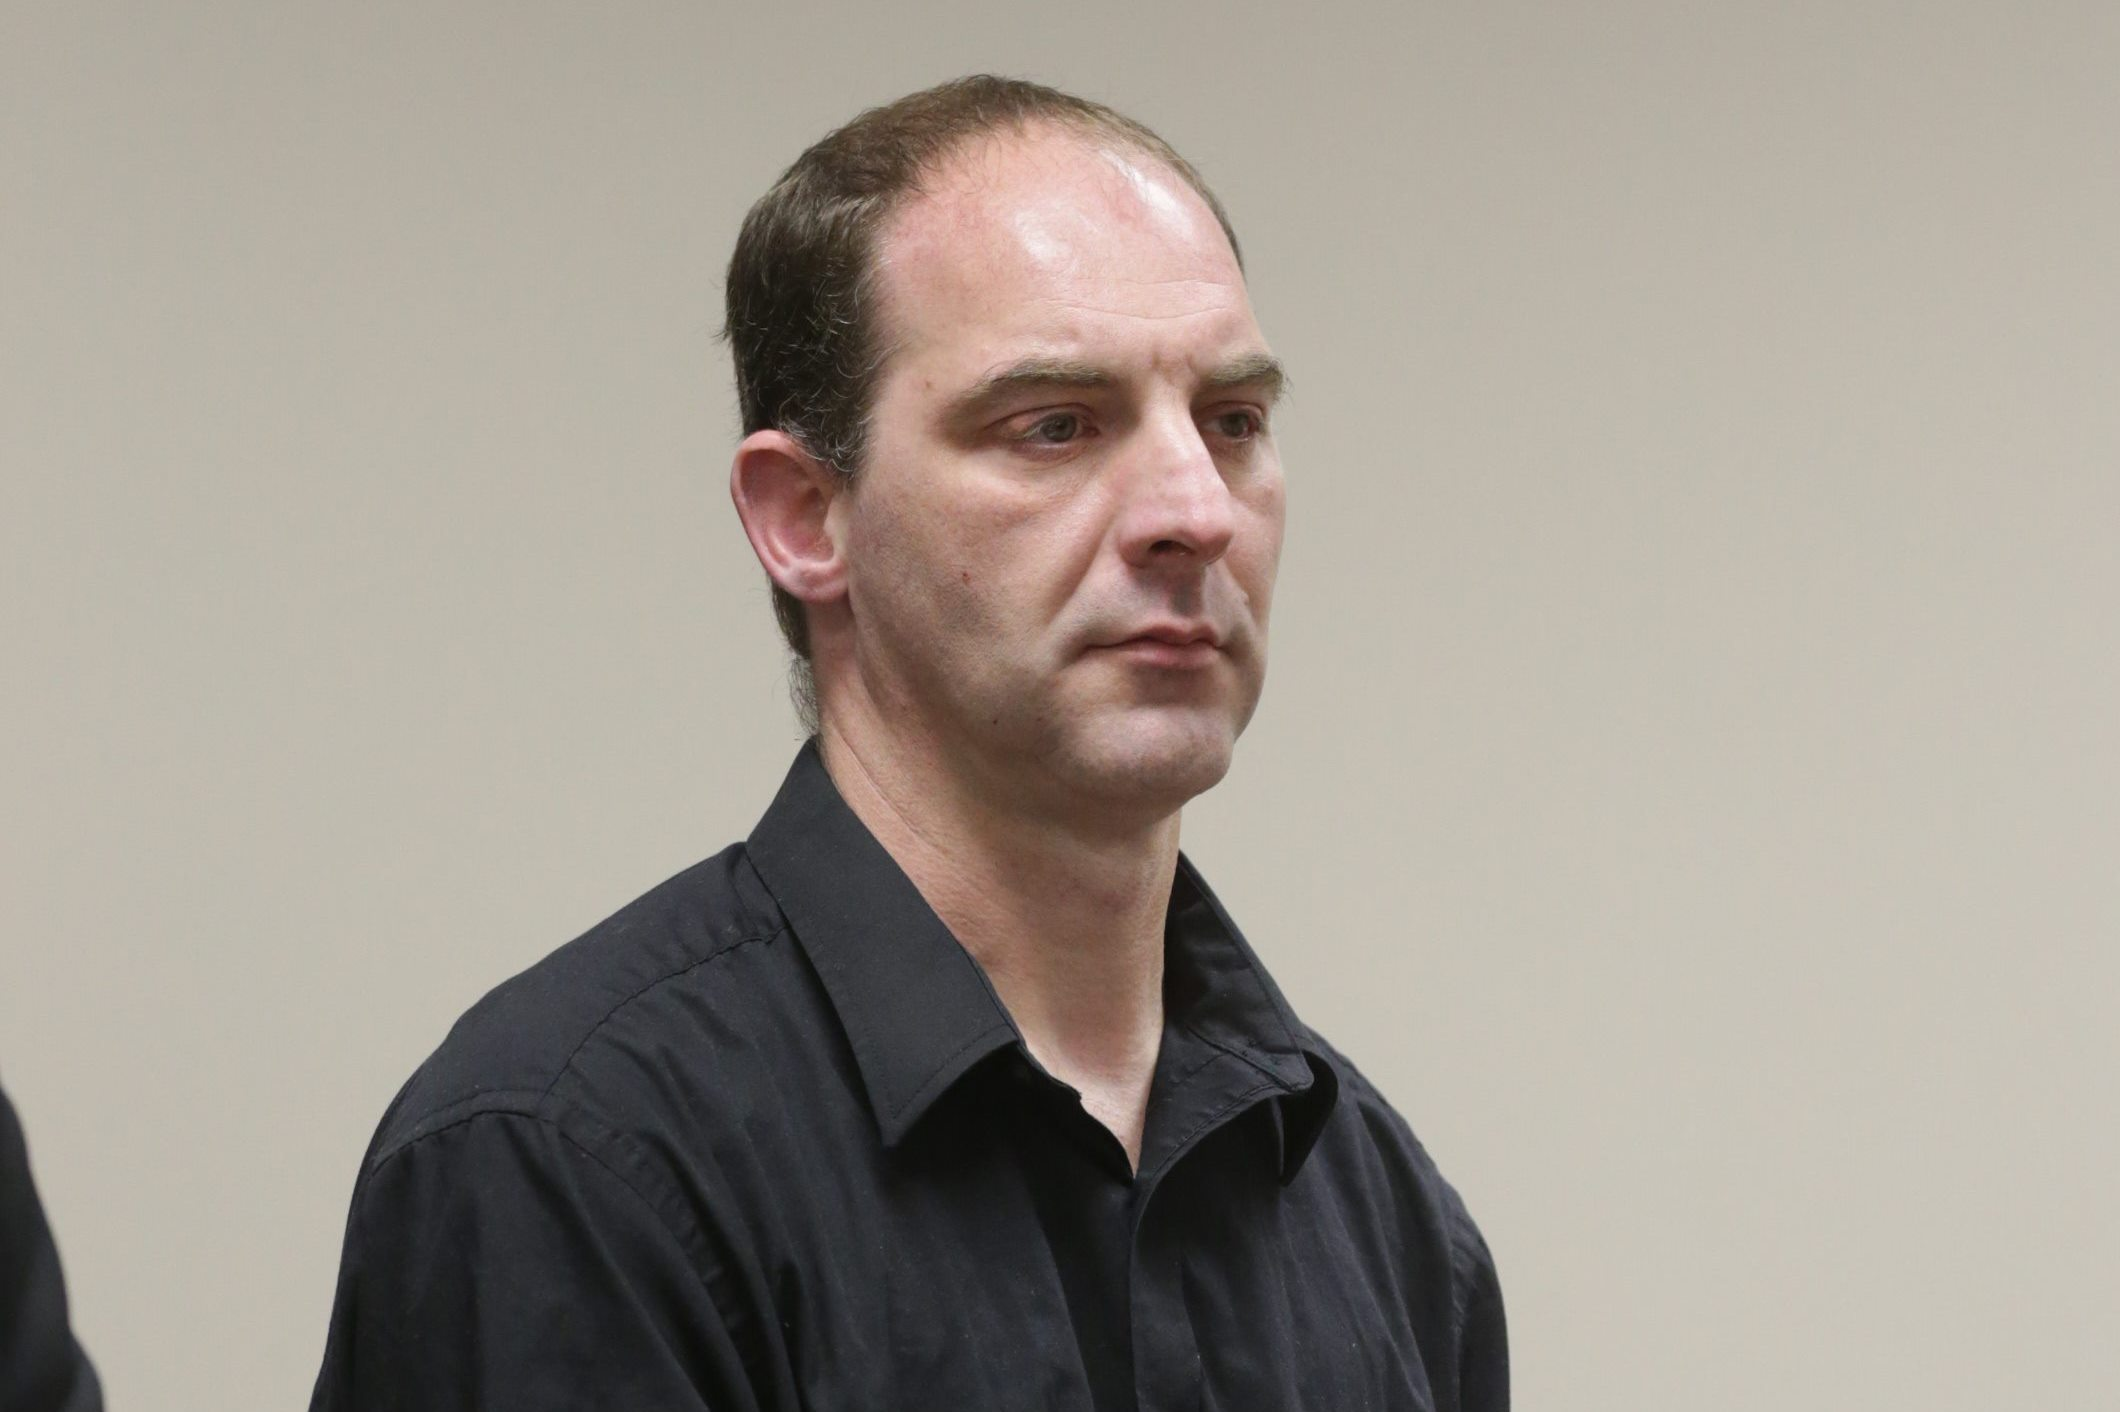 Robert E. MacLeod, of Niagara Falls, faced charges of sexual abuse, assault and robbery in connection with an assault on a Japanese tourist on Dec. 25, 2015, in Niagara Falls State Park. (John Hickey/Buffalo News)